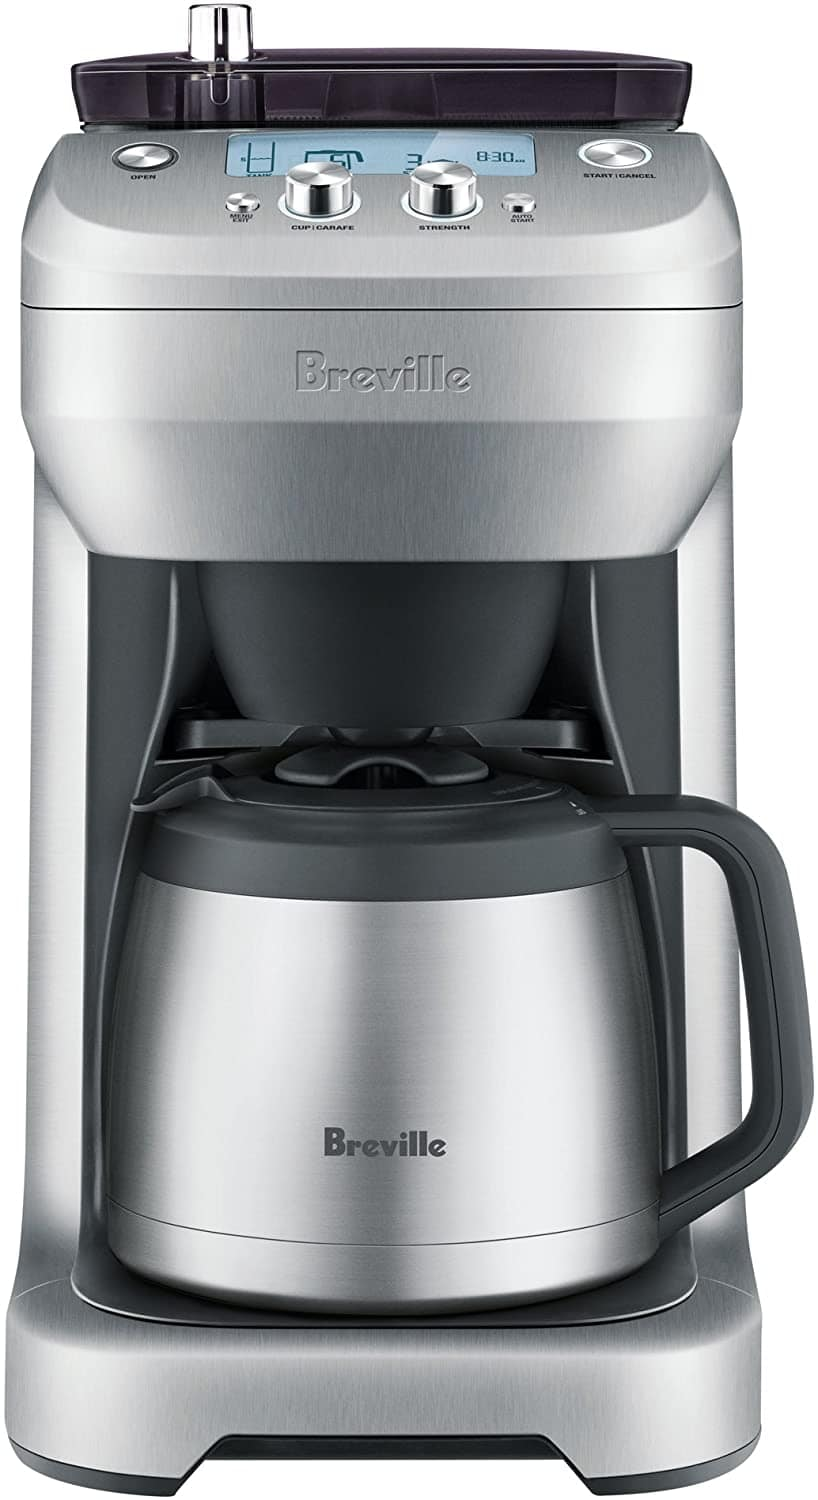 Breville Grind Control Grind and Brew Coffee Maker